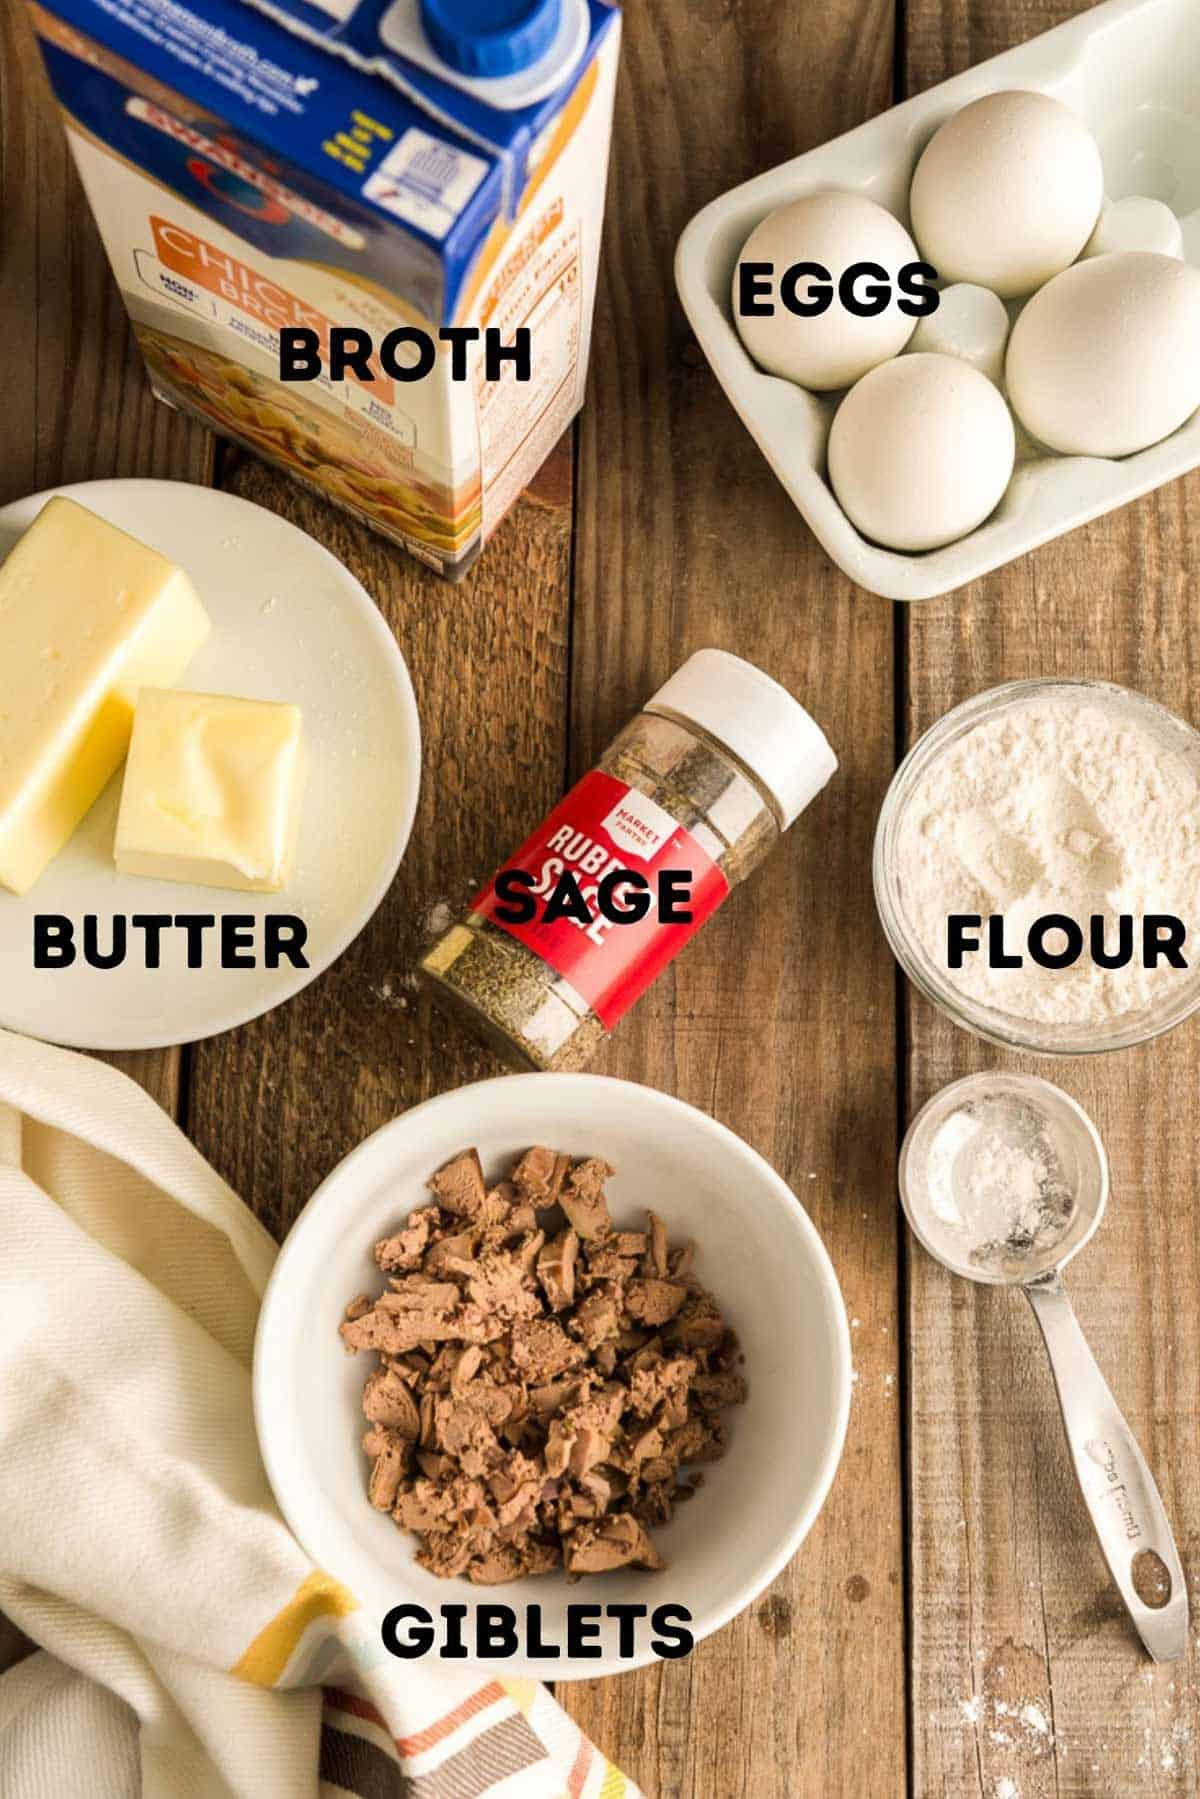 Giblets, sage, eggs, and other ingredients to make gravy.